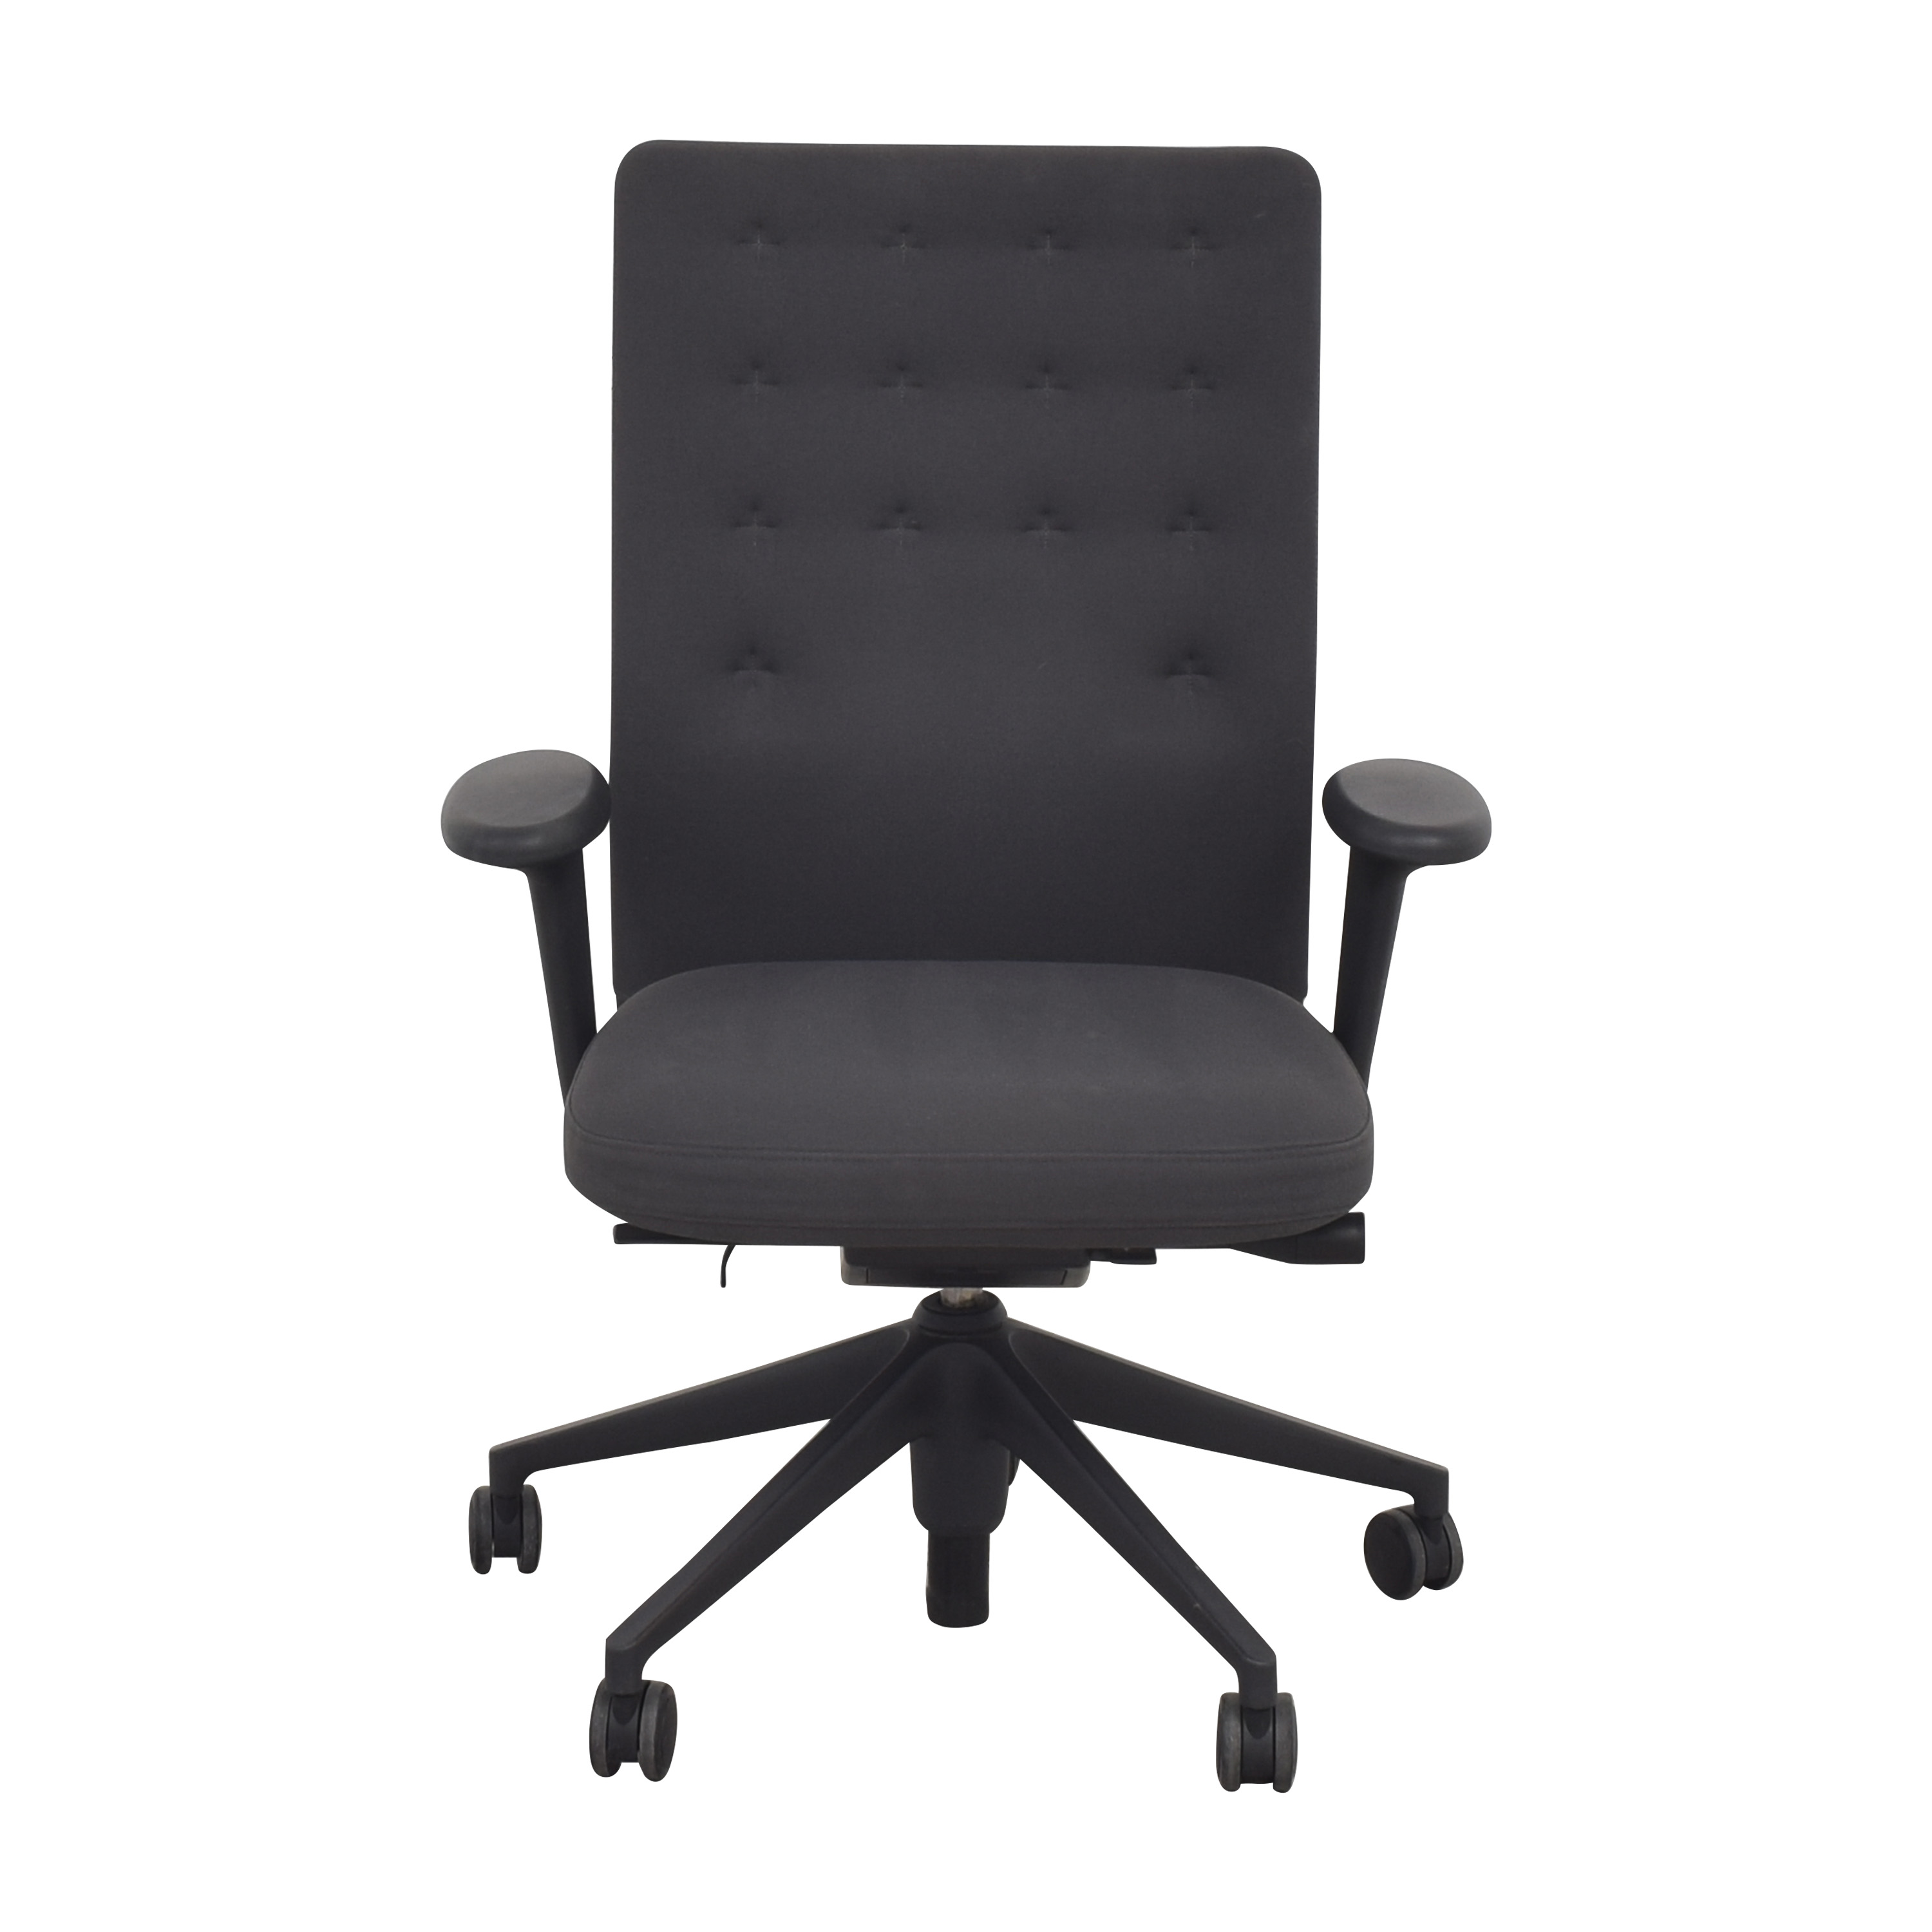 Vitra Vitra ID Trim Office Chair pa